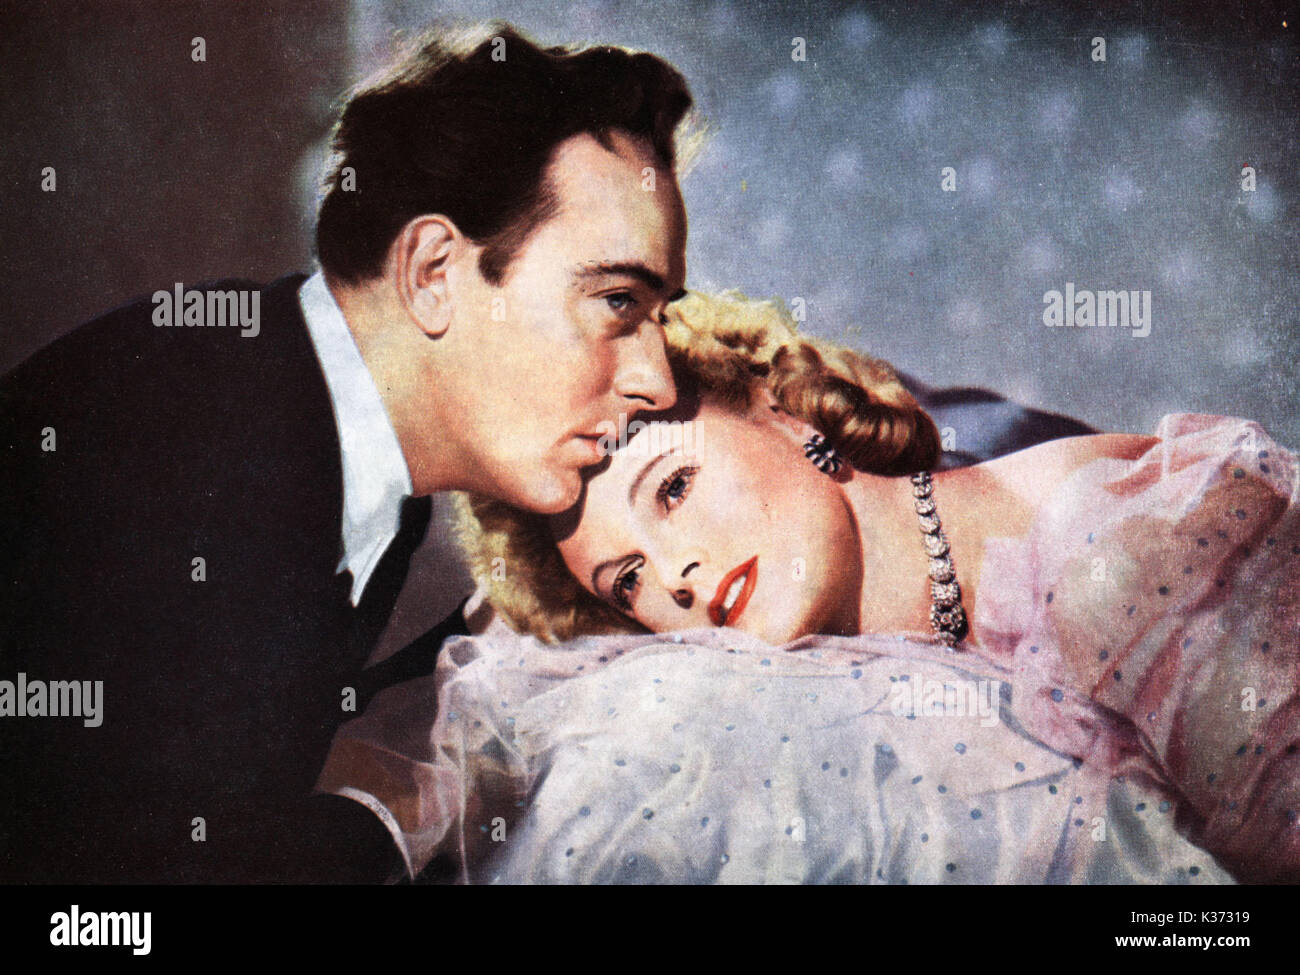 MAYTIME IN MAYFAIR MICHAEL WILDING AND ANNA NEAGLE A HERBERT WILCOX PRODUCTION     Date: 1949 - Stock Image